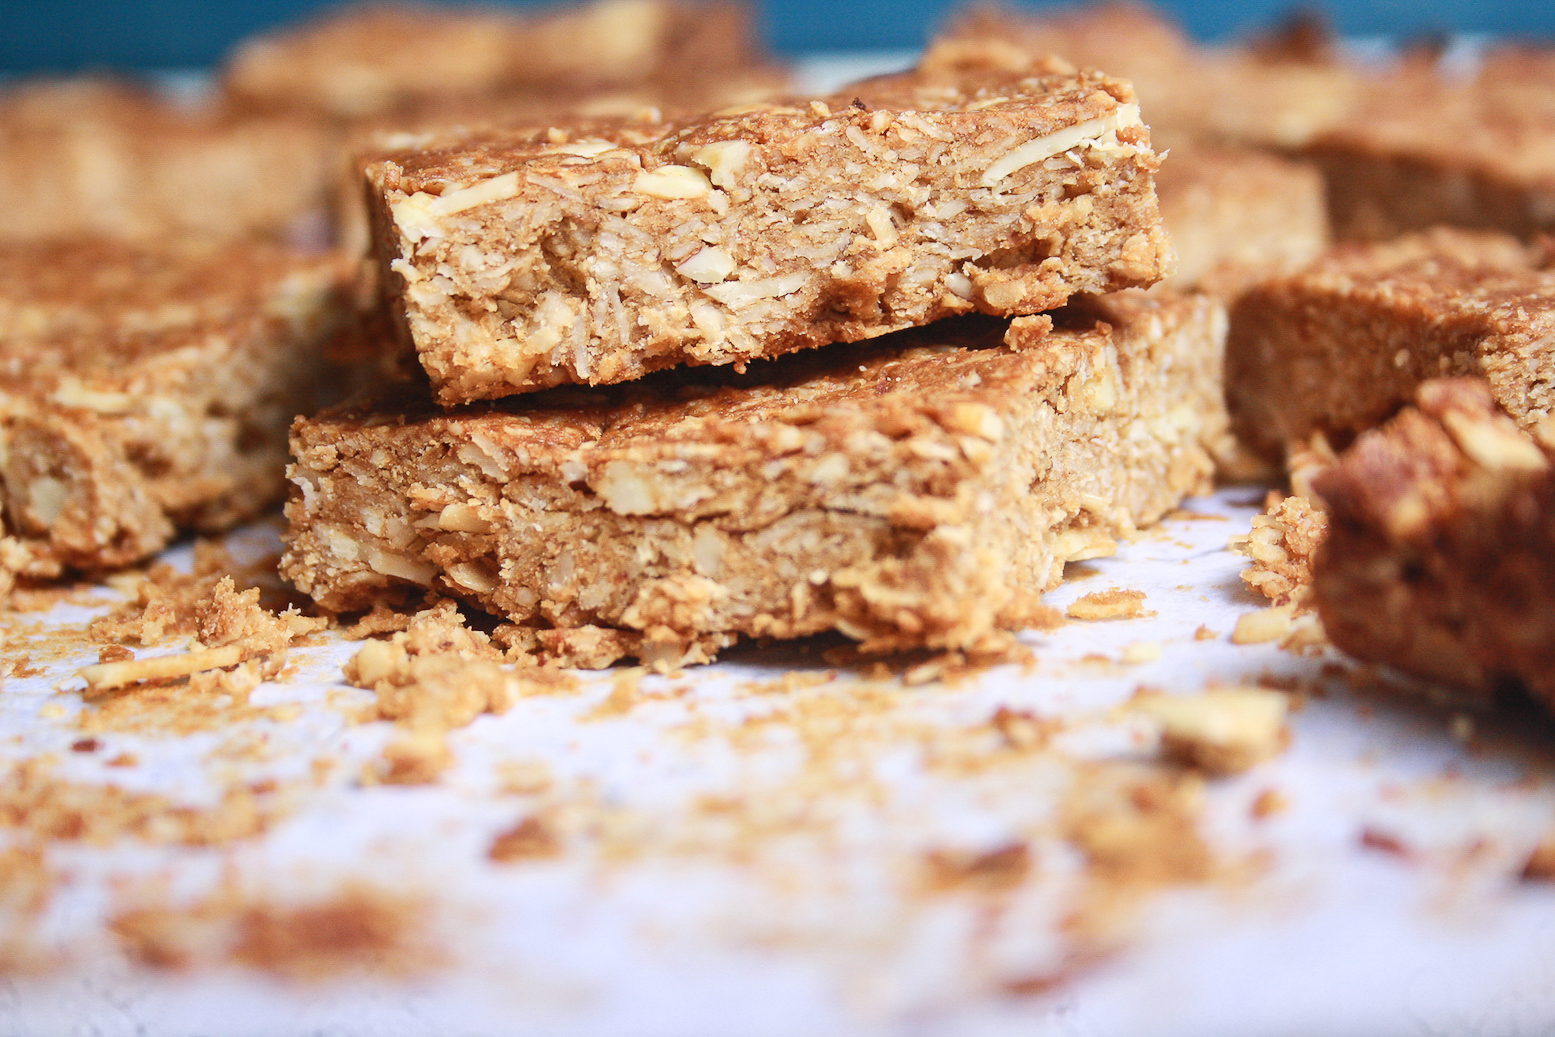 Chewy granola bars filled with oats, ground almonds, peanut butter. No fat or refined sugar!